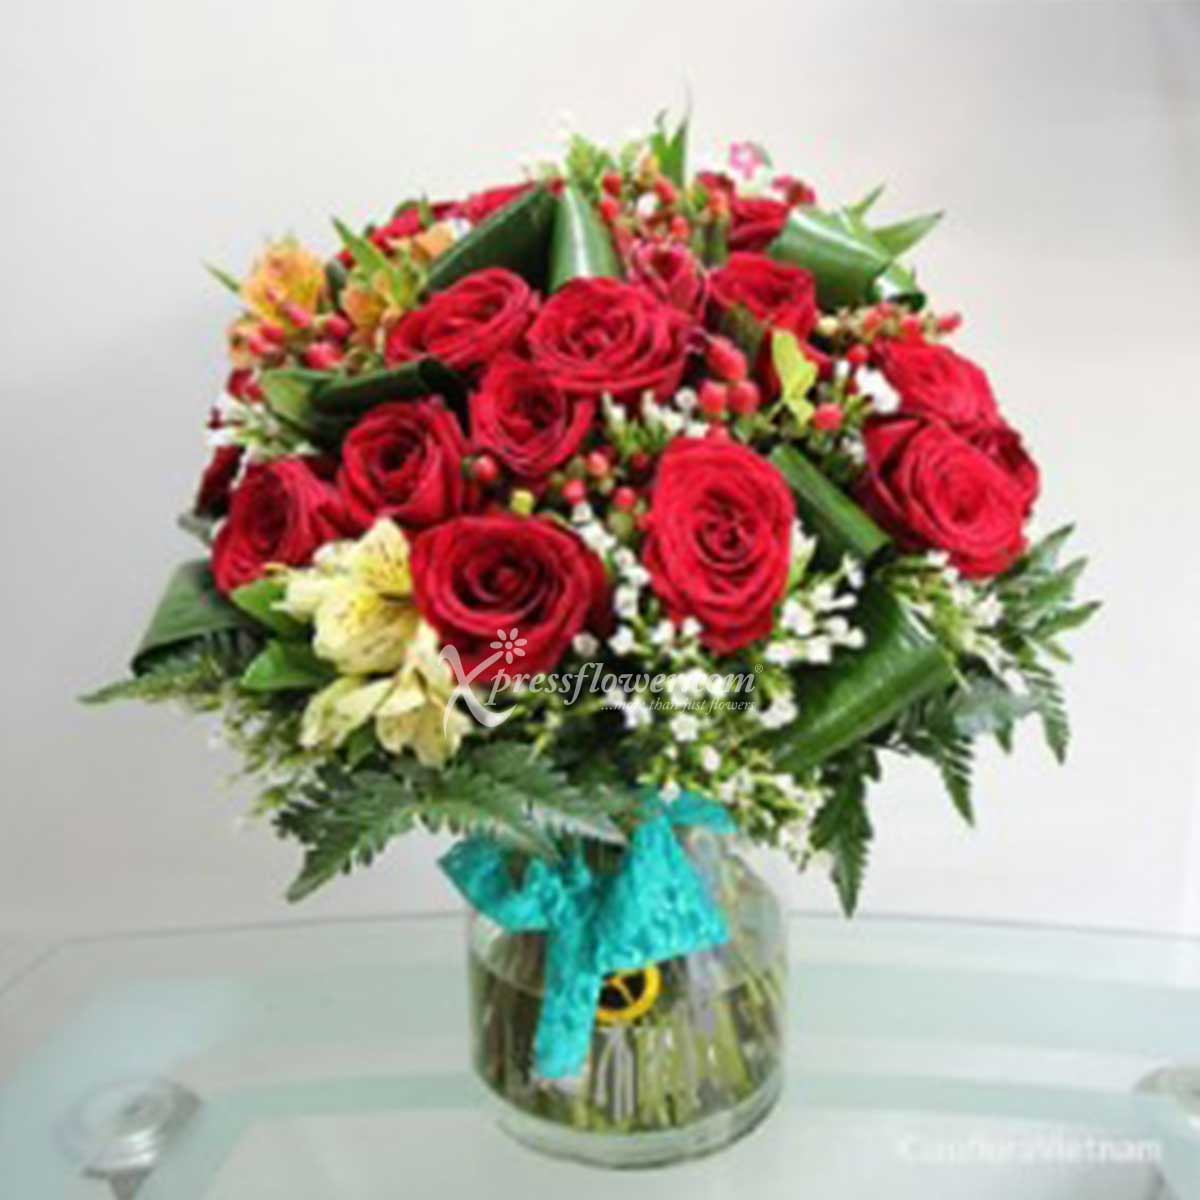 IDVN1804 RED ROSES & SEASONAL FLOWERS IN VASE (VN)